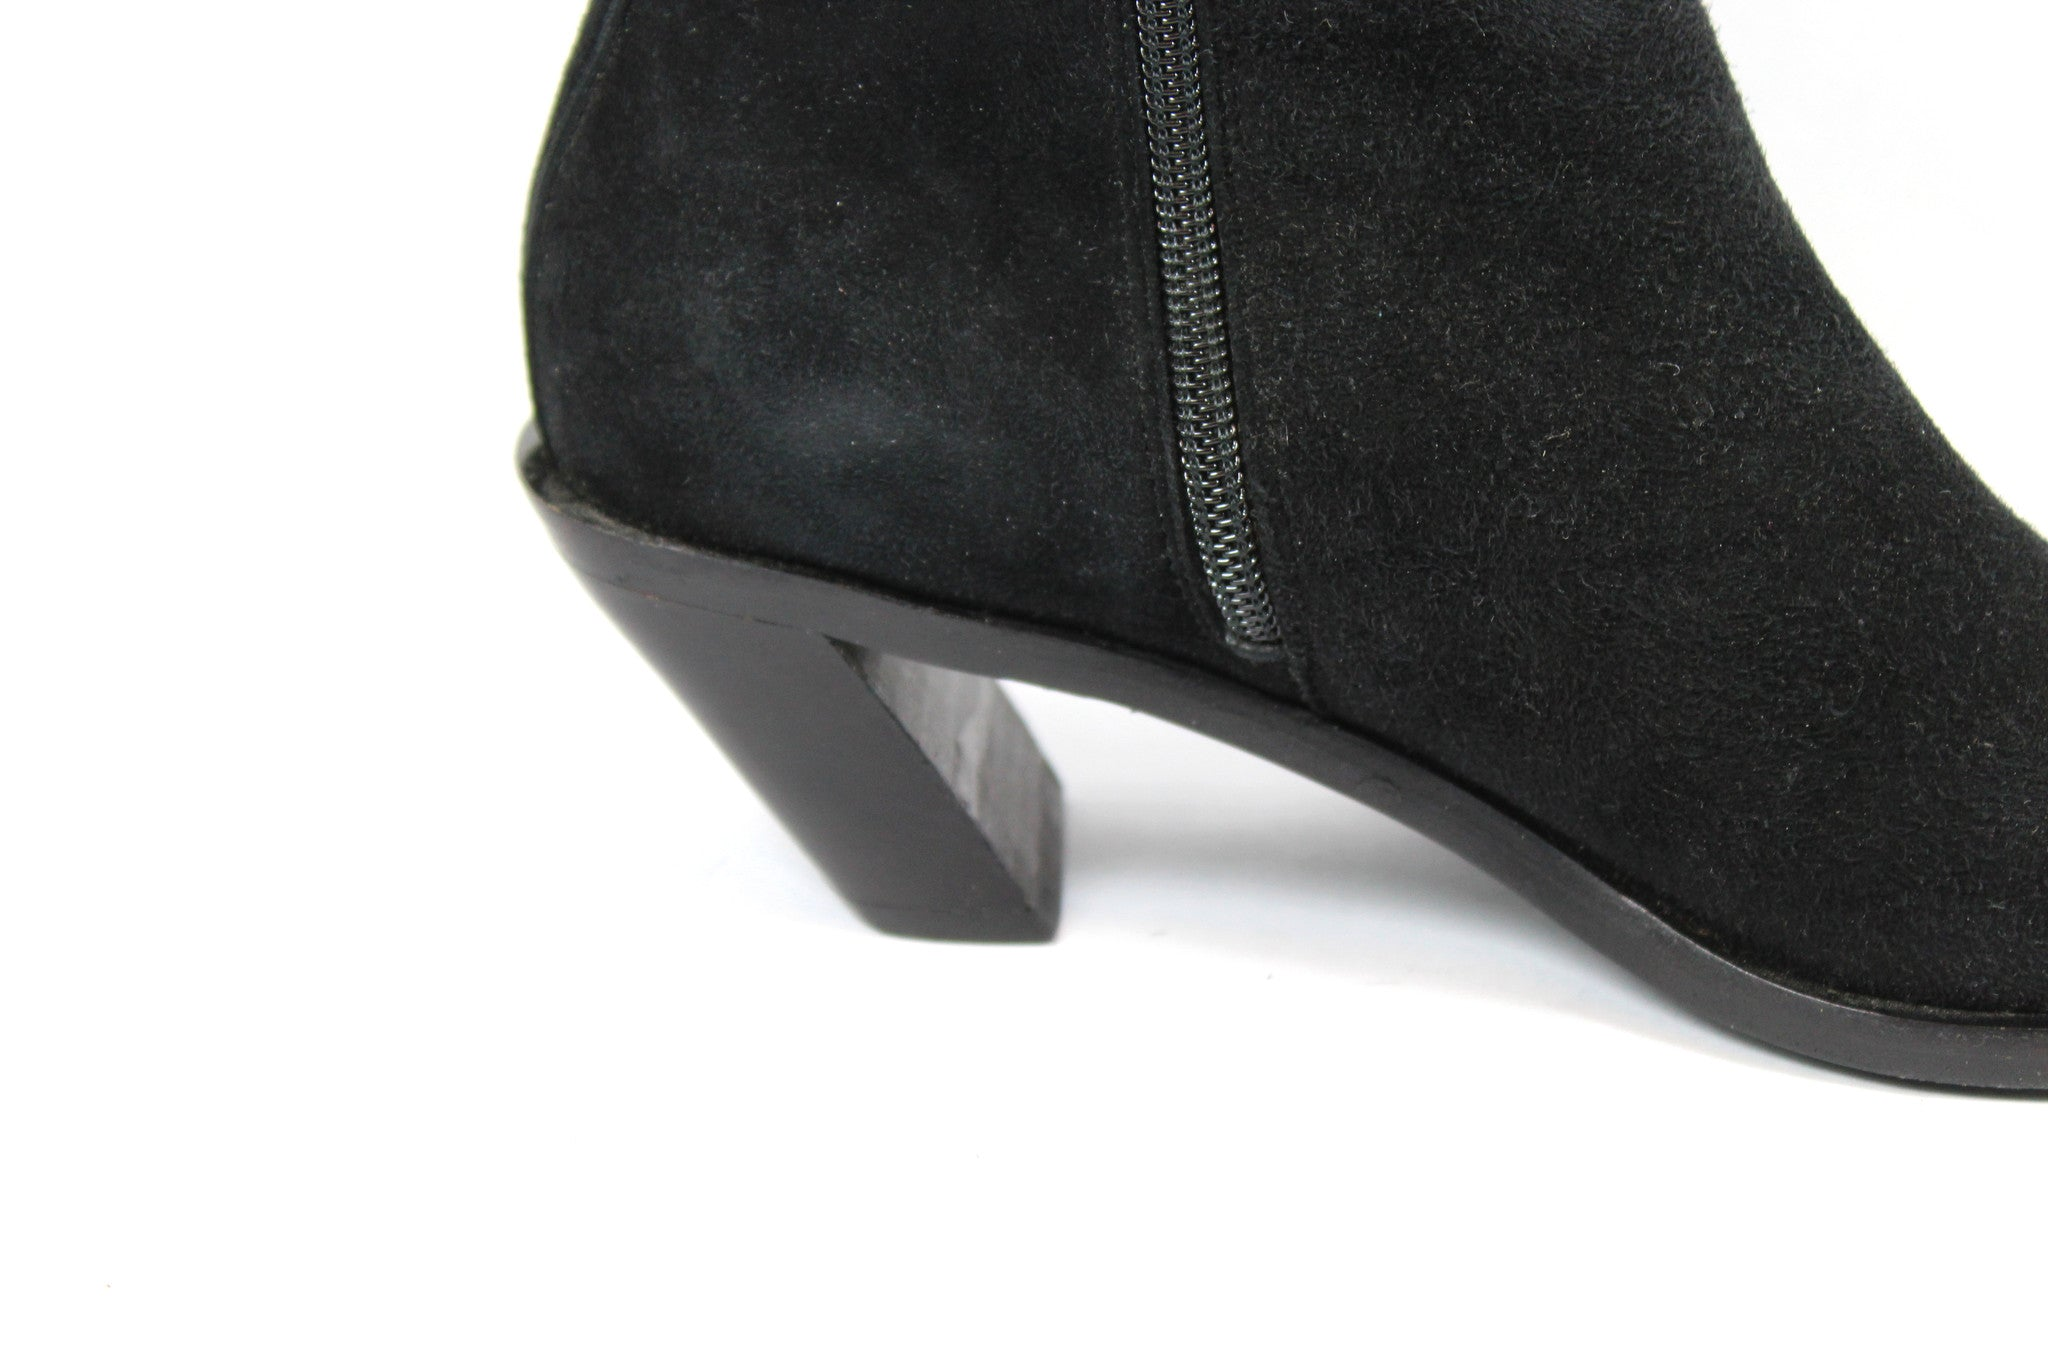 'SOLD' Ann Demeulemeester Suede Ankle Boots w Slanted Heel (Size 37) - Encore Consignment - 6